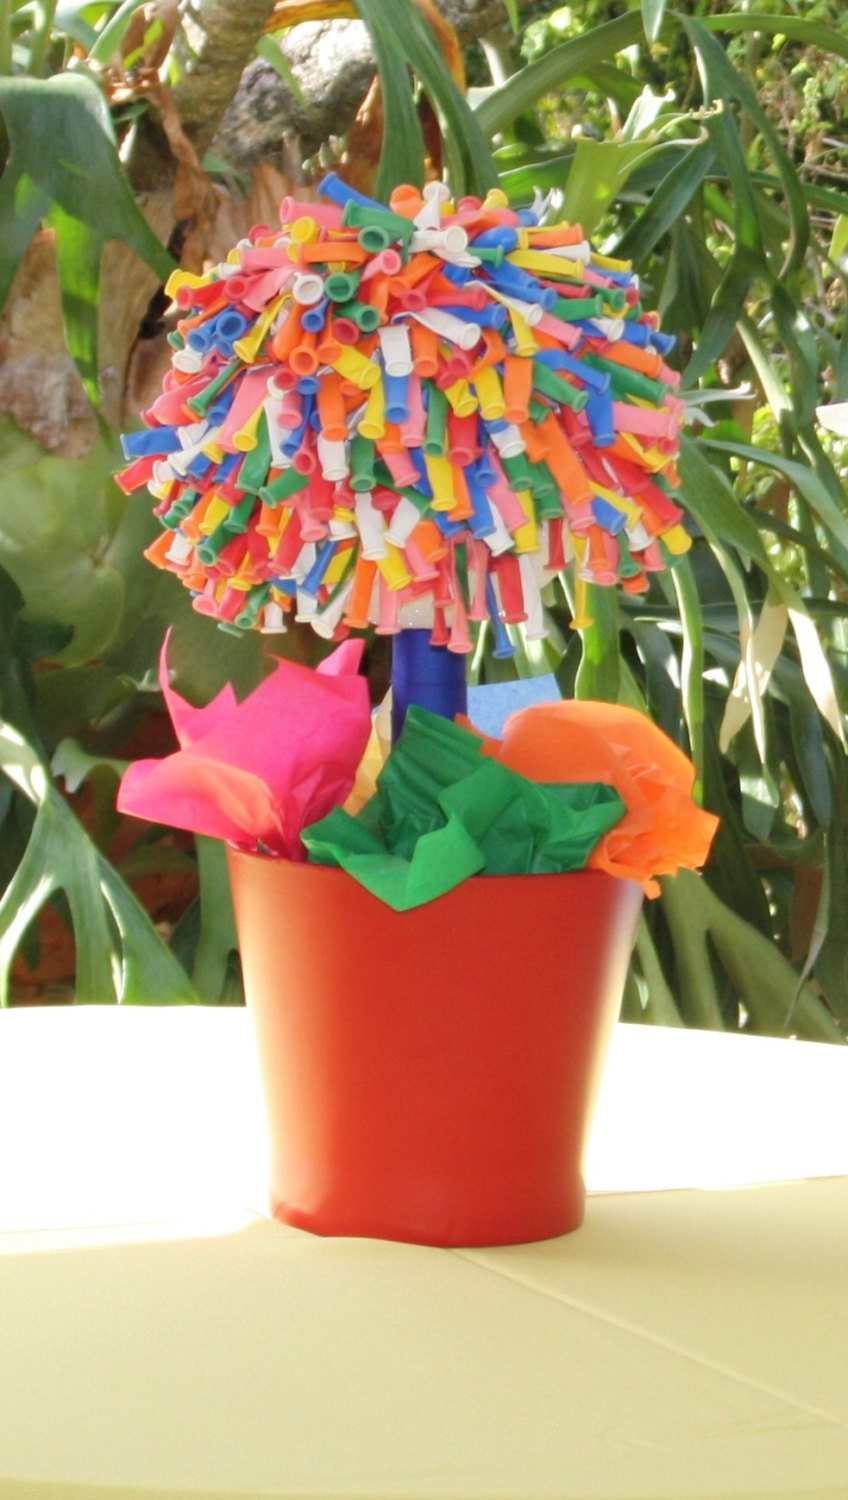 Balloon topiary colorful centerpiece by krispercreations